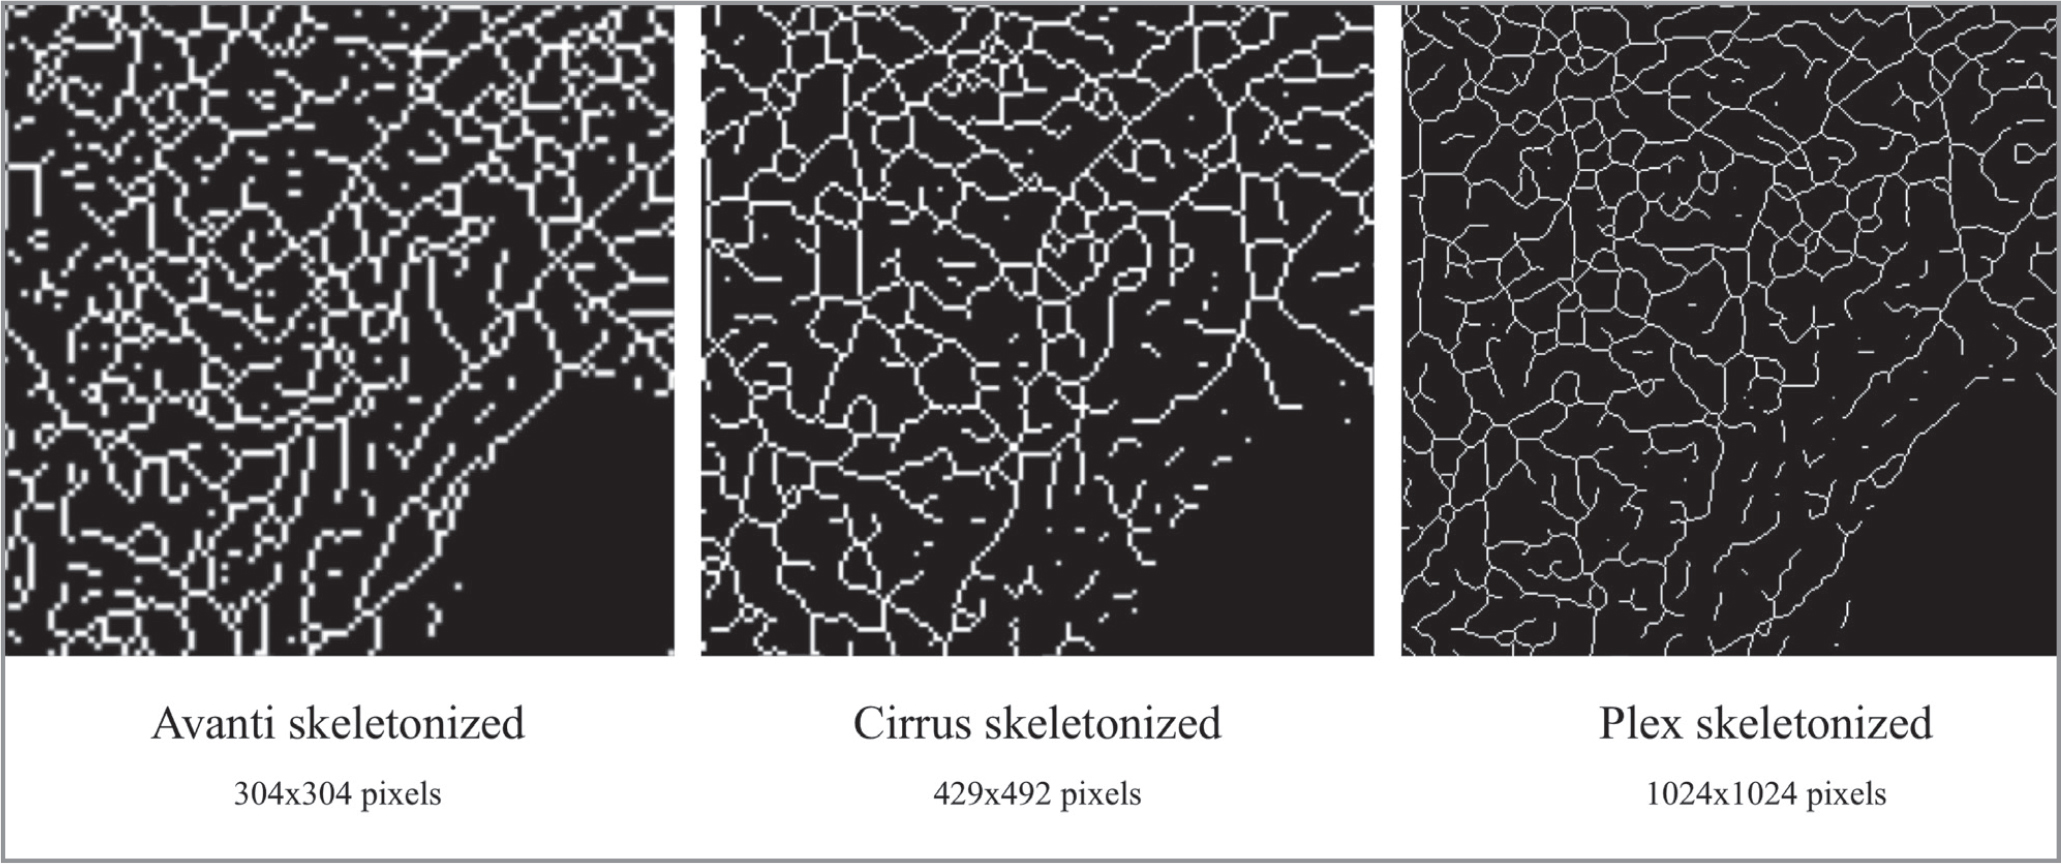 Pixel size variation in skeletonized images of the Avanti, Cirrus, and Plex optical coherence tomography angiography devices. With a universal decrease of vessel width to one pixel, the difference in area occupied by one pixel decreases from the Avanti to the Cirrus to the Plex device as the resolution, respectively, increases. Please note, these are not enlargements of the original images but of the skeletonized images, and hence the pixelated appearance.